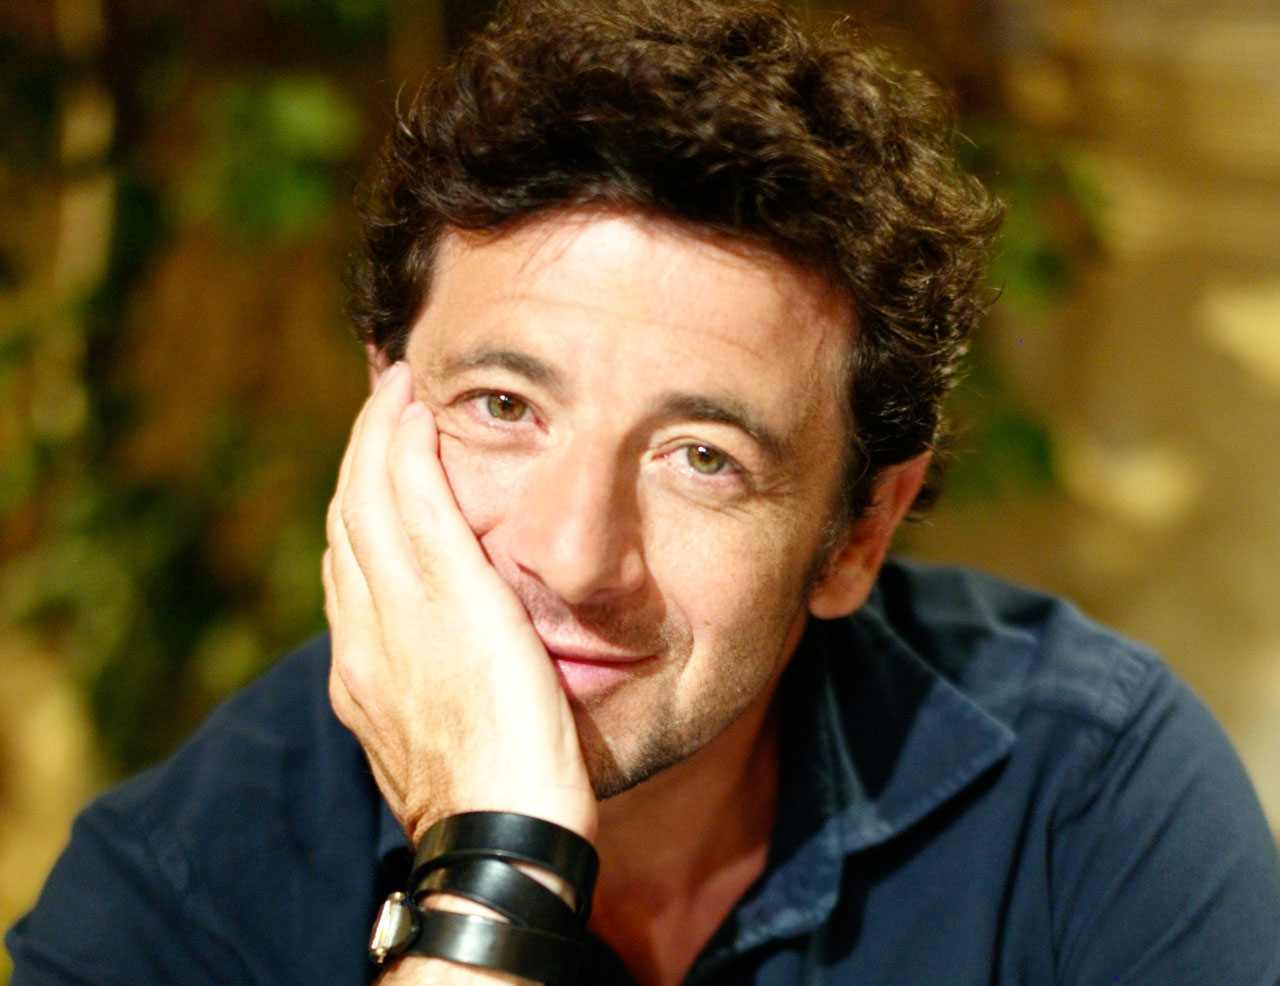 Patrick Bruel Wallpapers hd